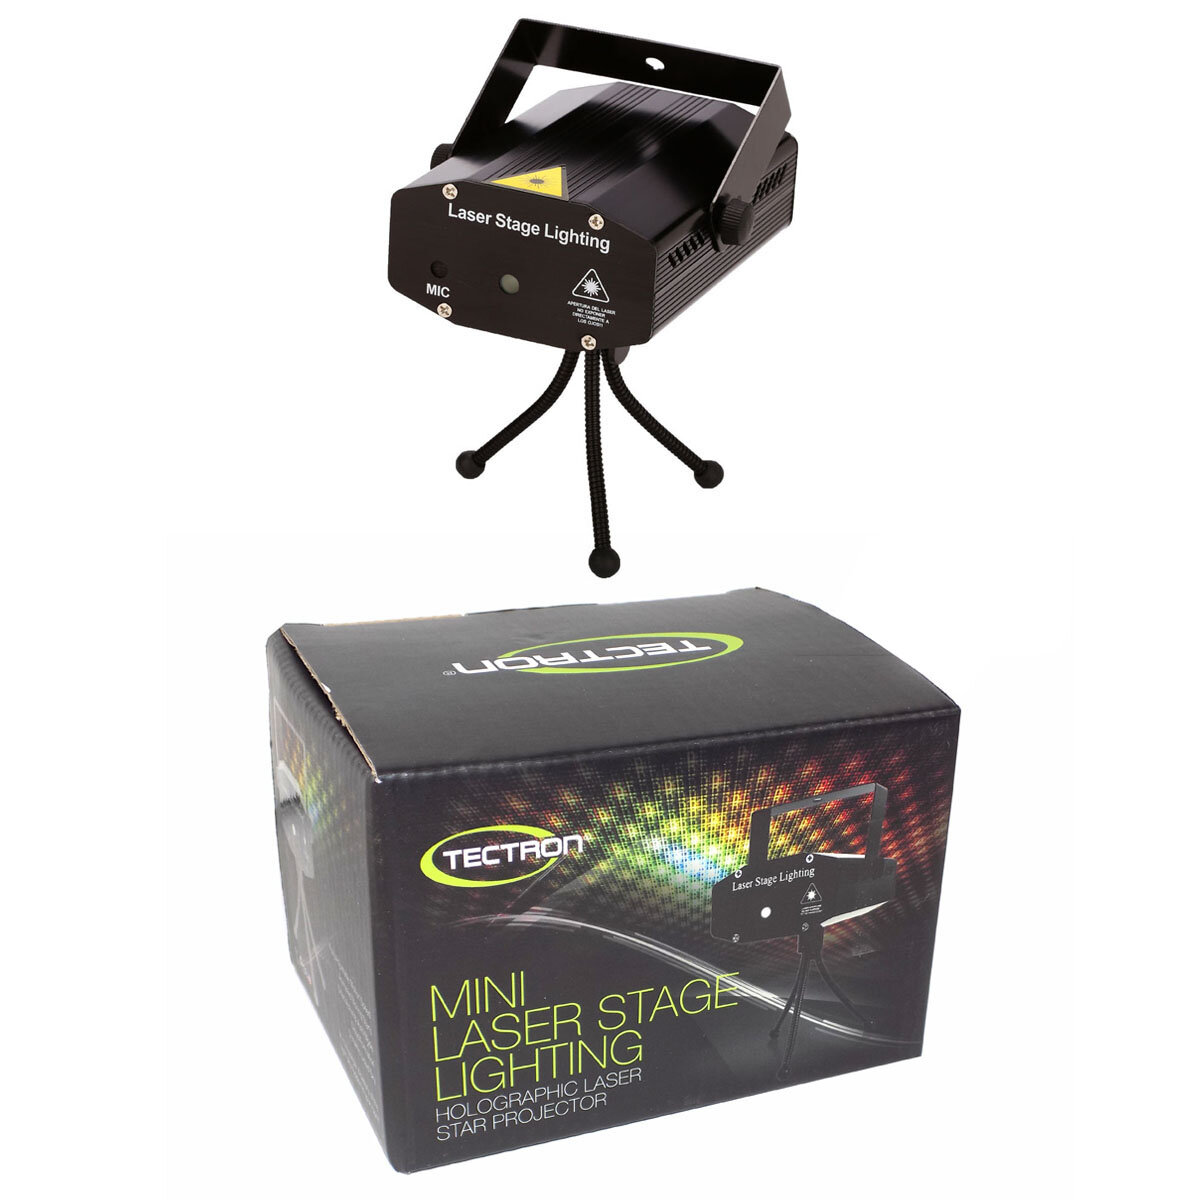 mini laser stage lighting sound activated tectron international